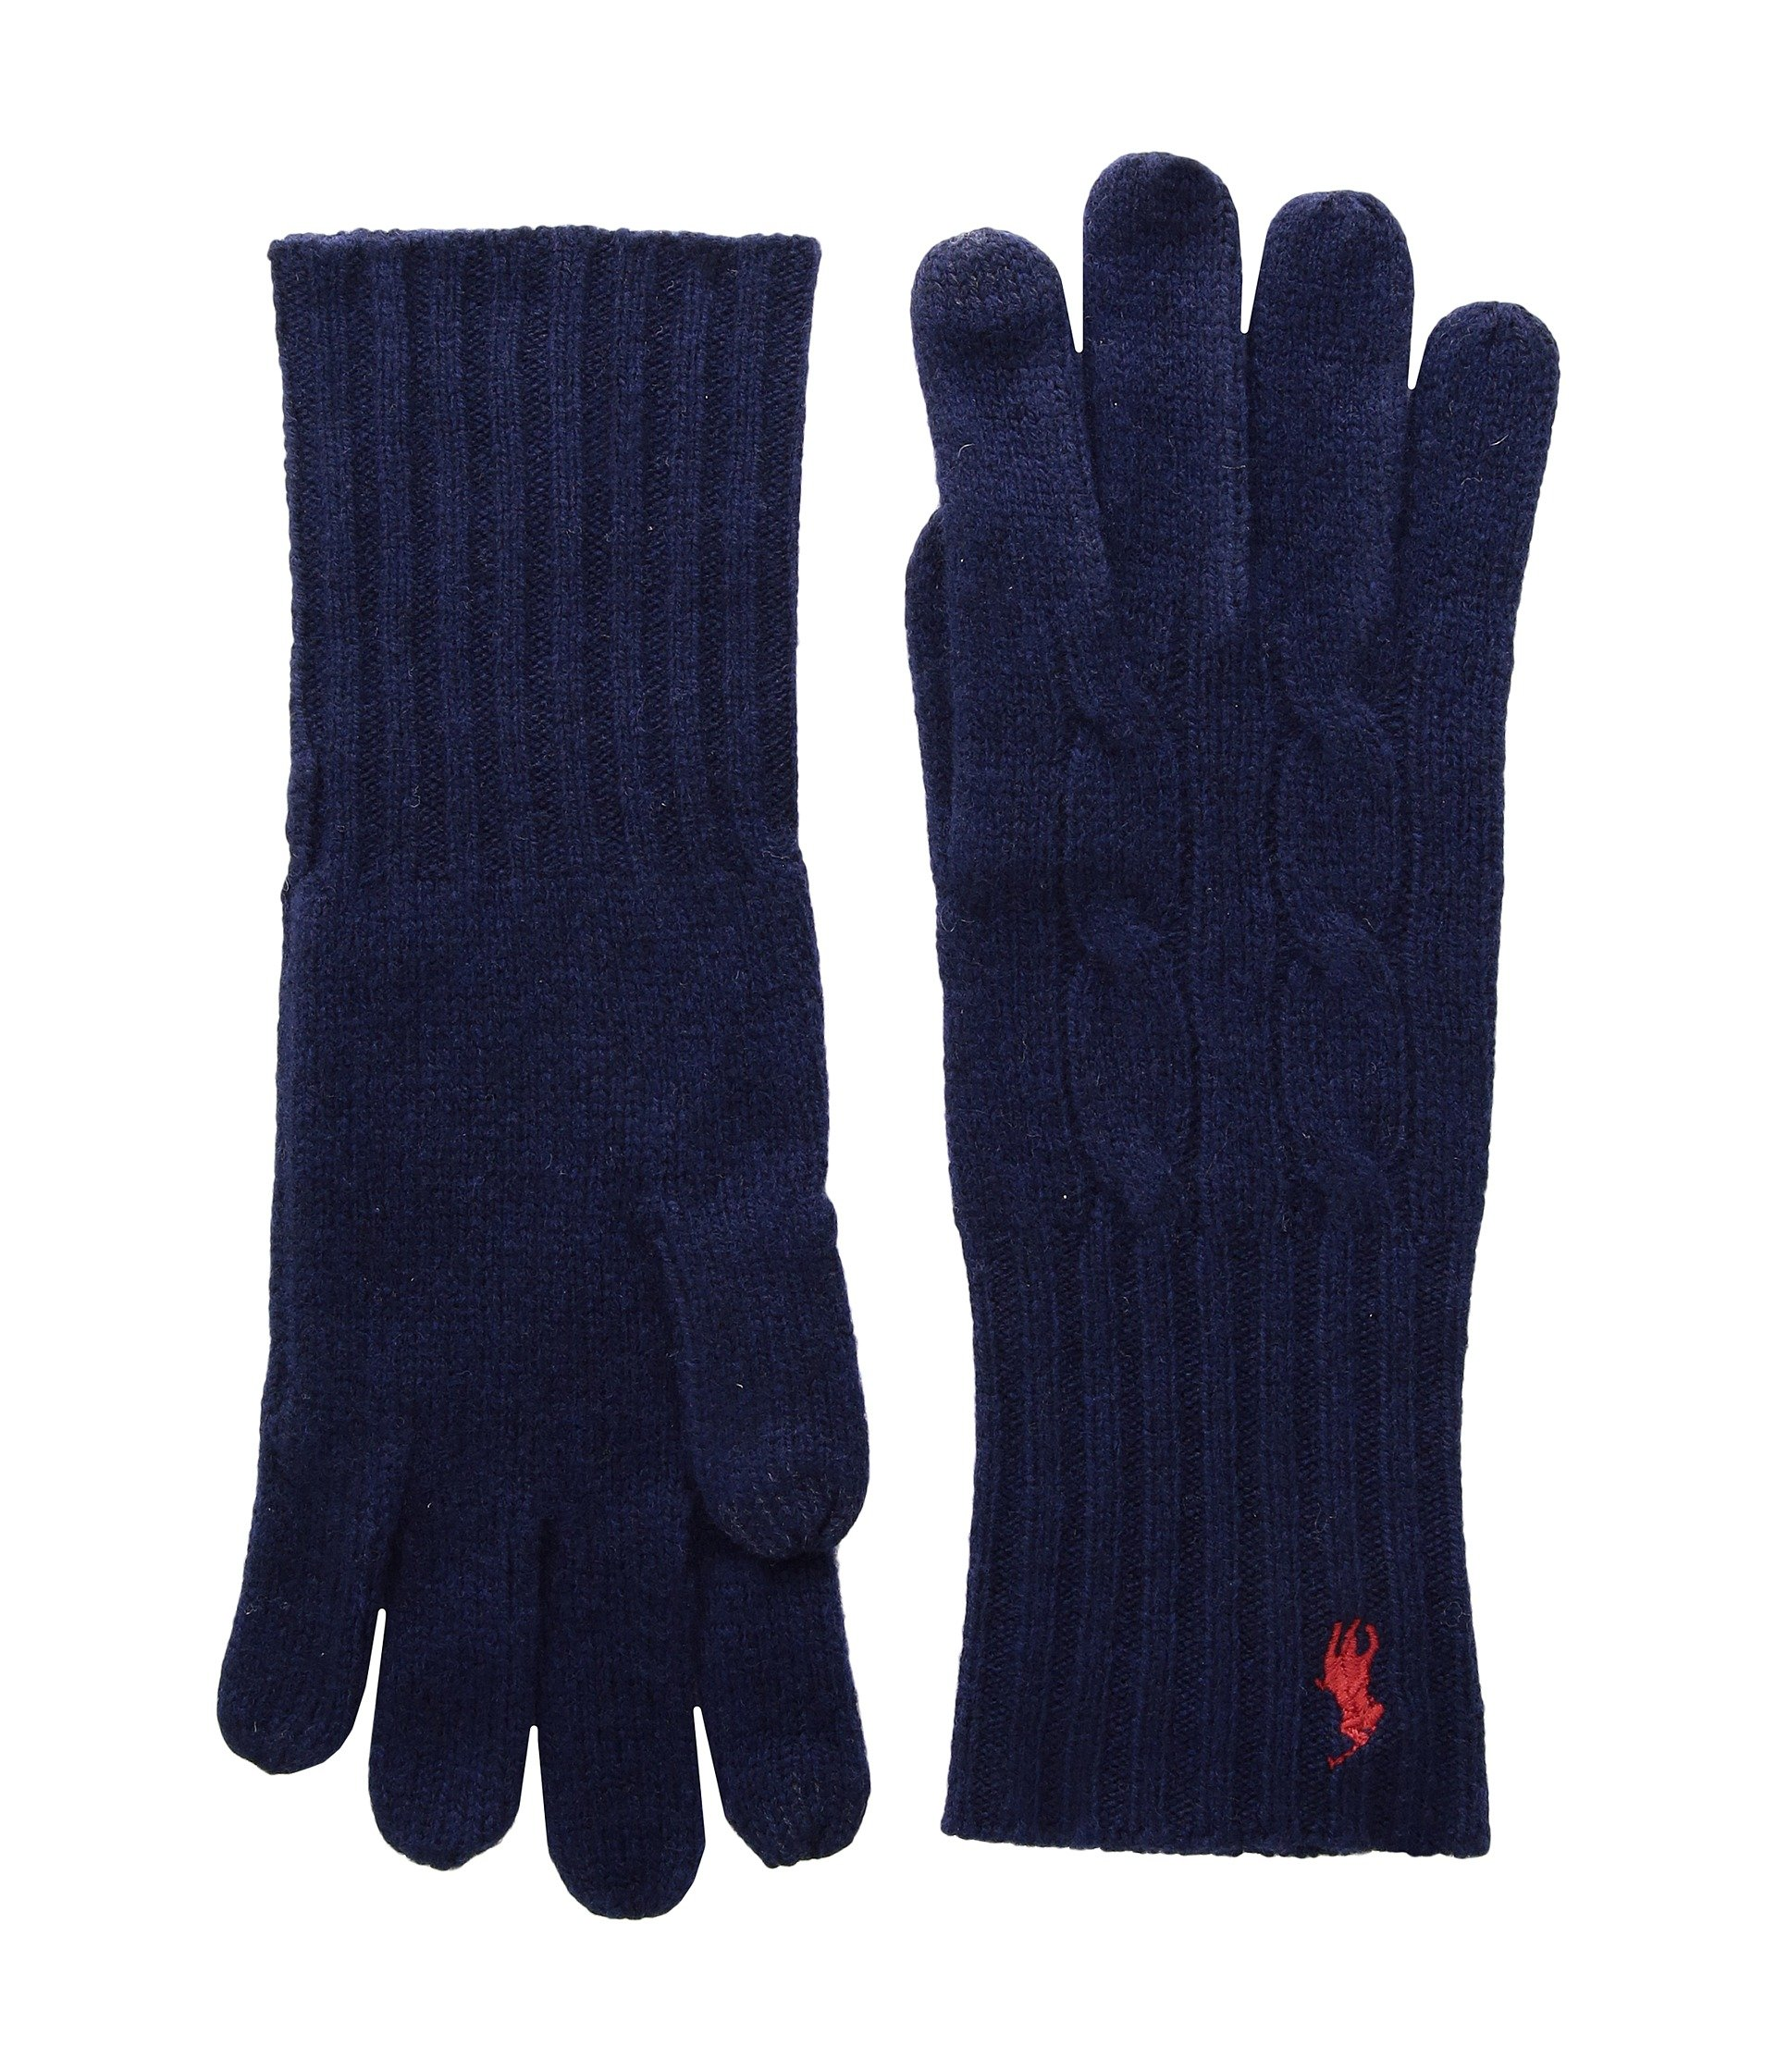 Cashmere Blend Classic Cable Knit Gloves, BRIGHT NAVY